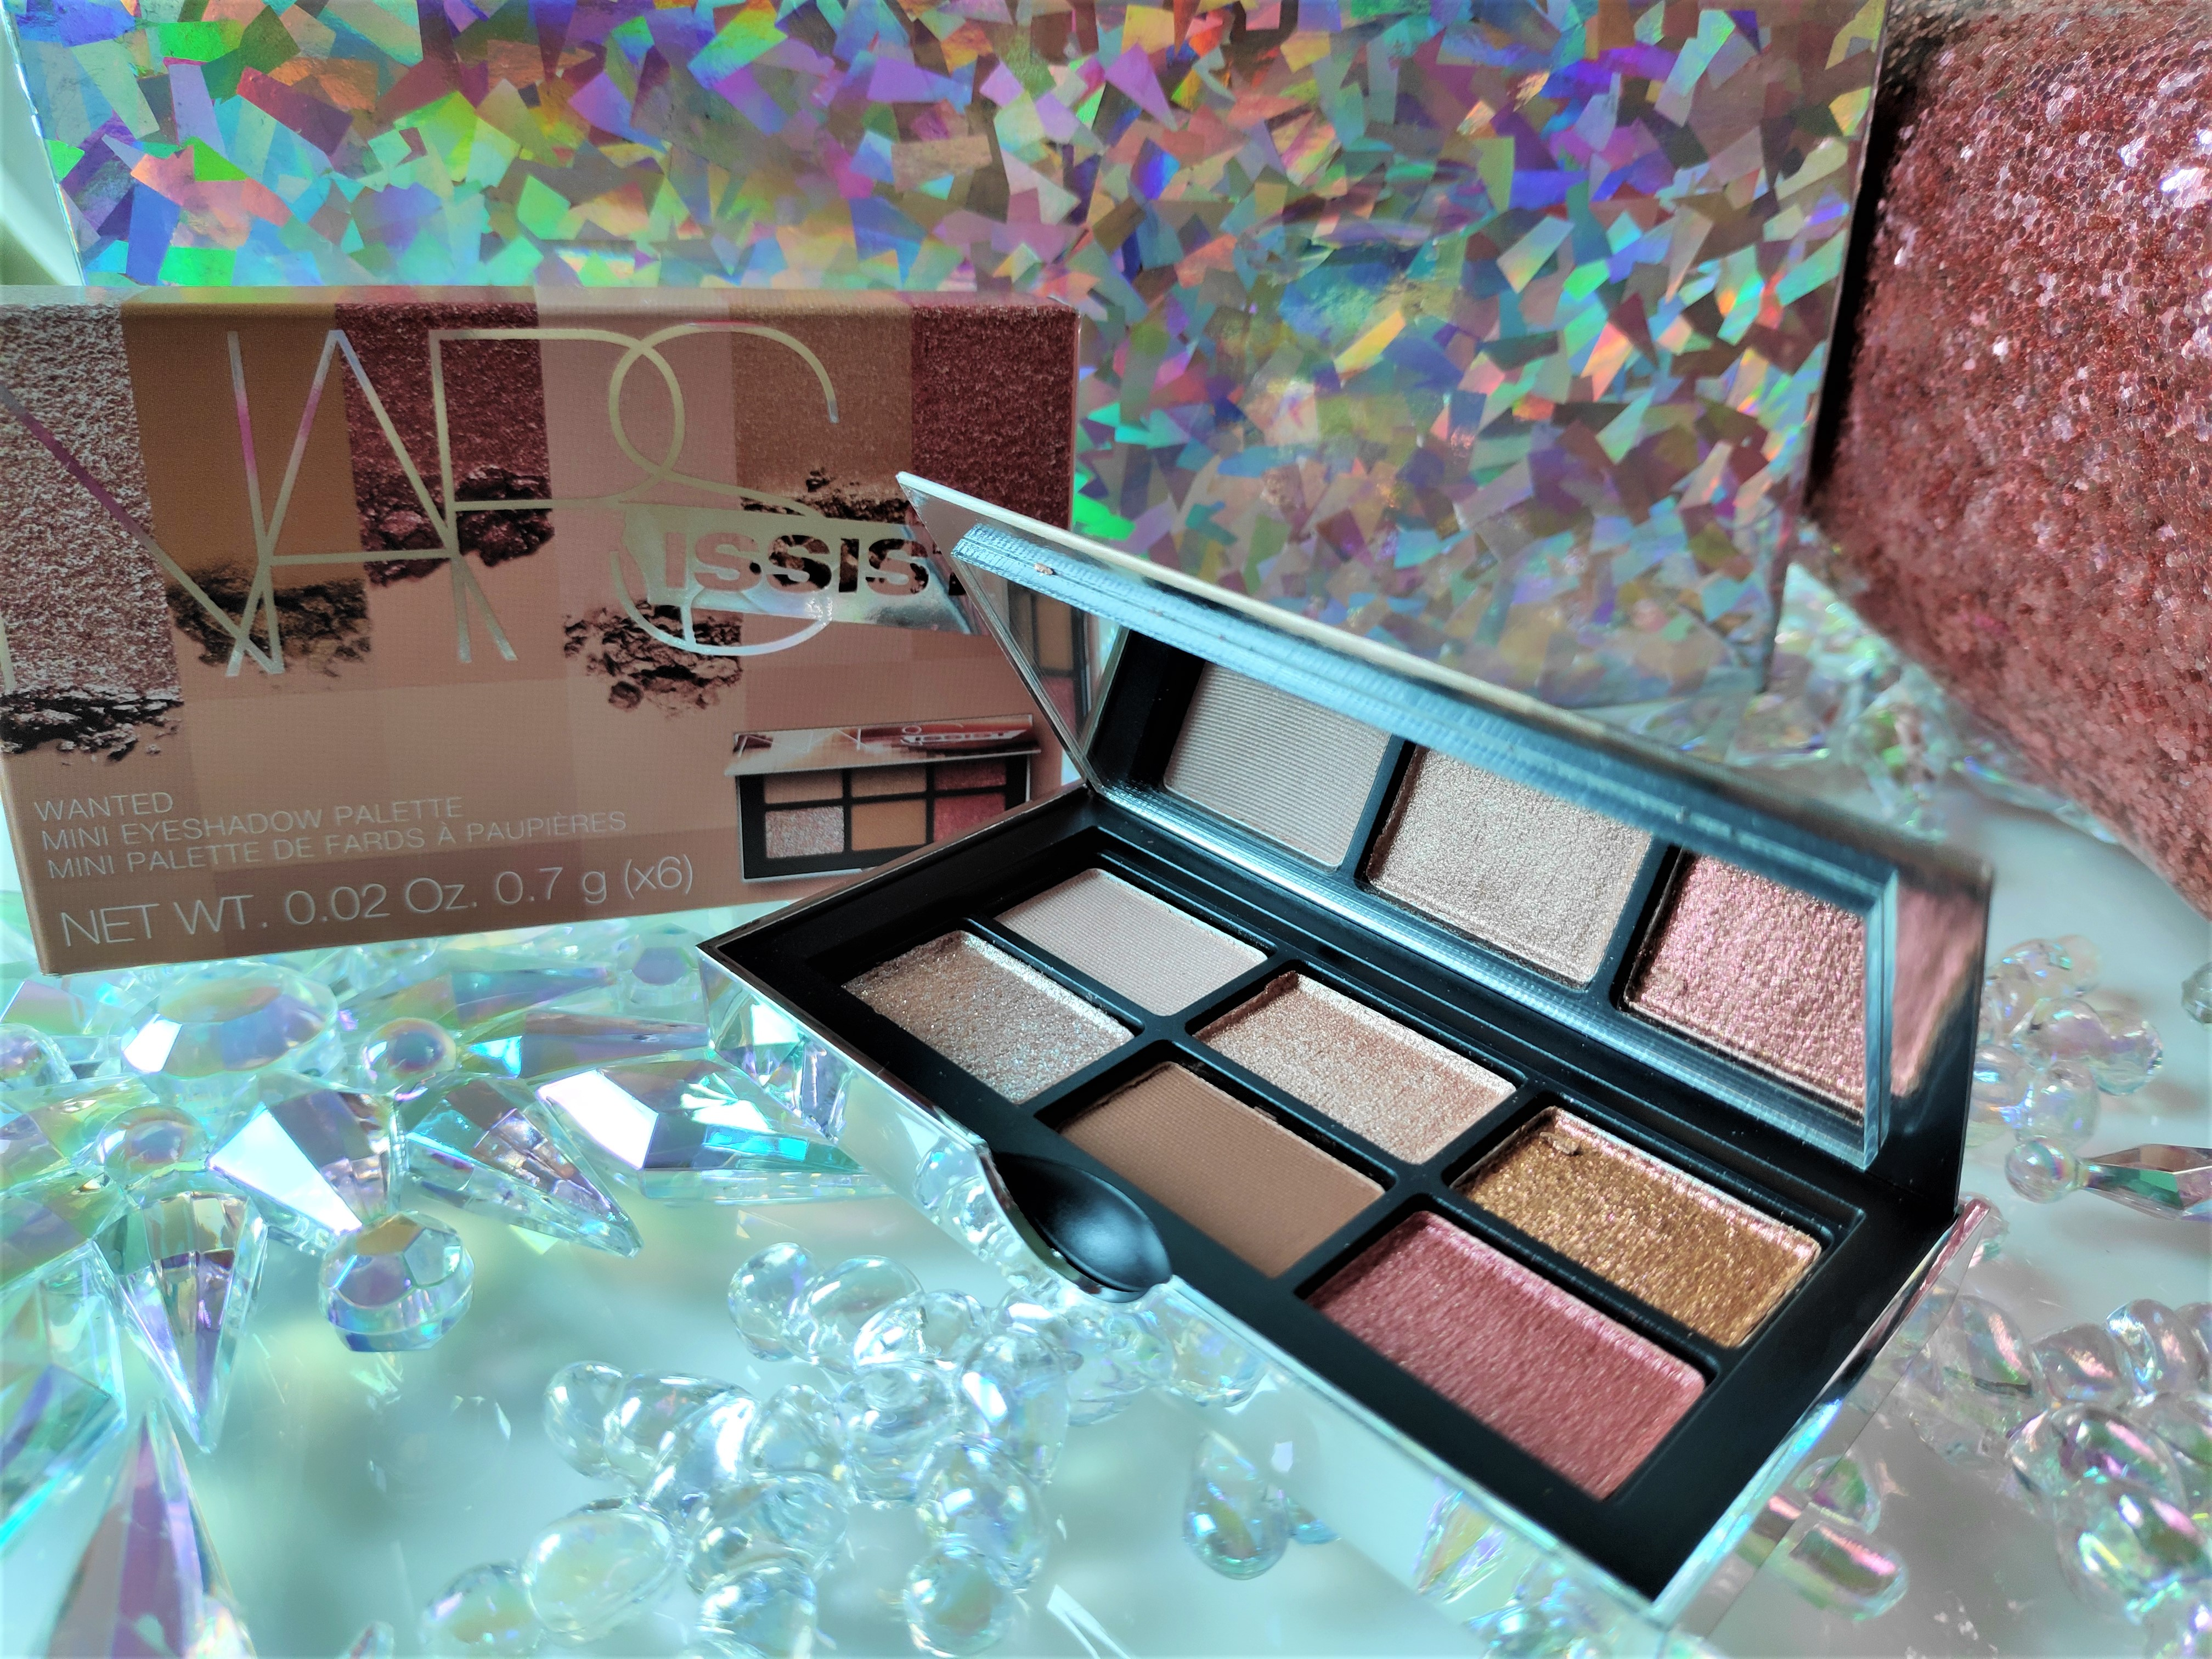 Nars Wanted Mini Eyeshadow Palette Review Glossnglitters